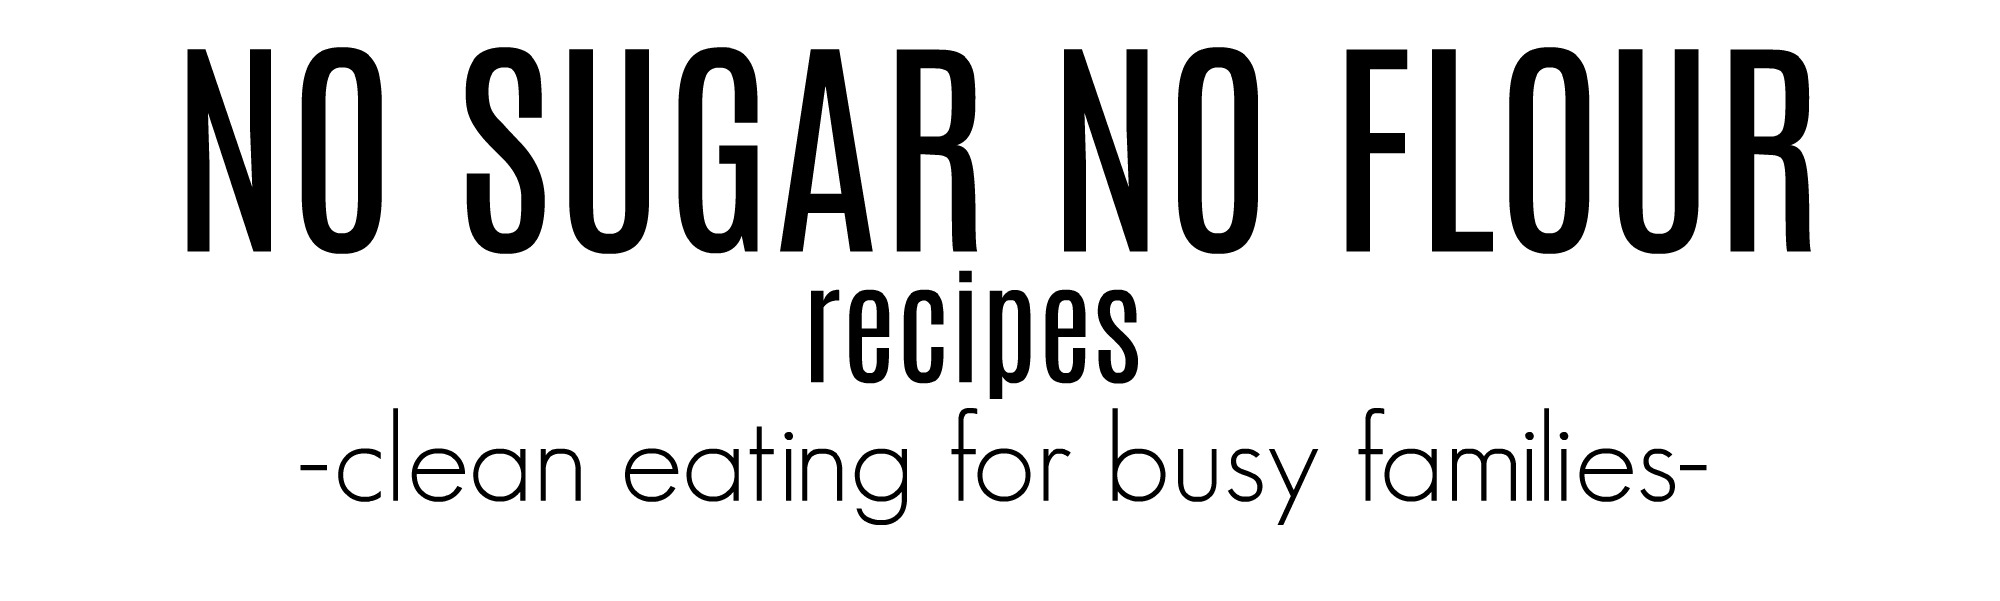 nosugarnoflourrecipes.com